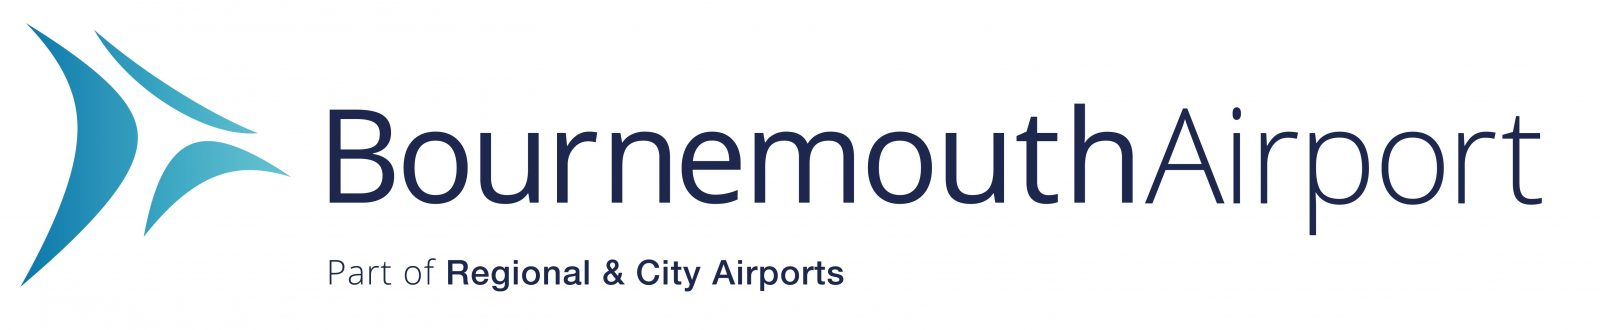 Welcome to Bournemouth Airport